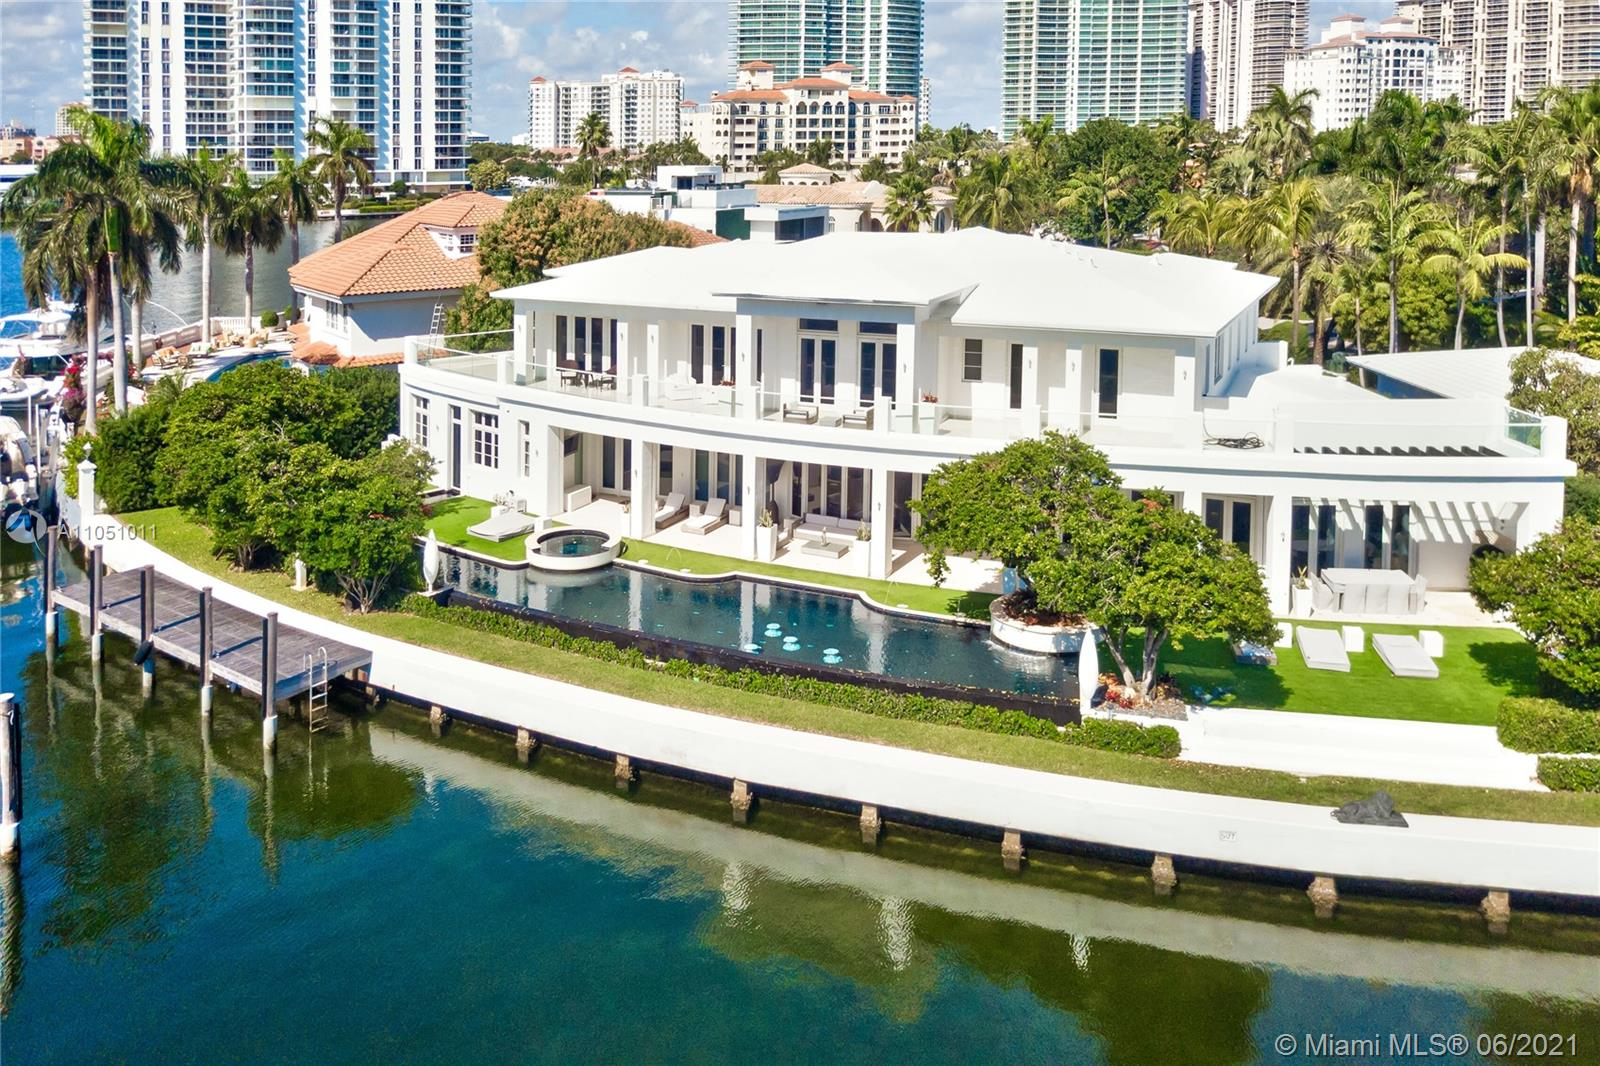 Golden Beach's finest waterfront estate with an impressive 188 ft. of pristine water frontage. This one-of-a-kind luxury residence offers the amenities of an exclusive resort with the inviting spaces of a home.  As you walk in, you are greeted with a grand double staircase, vaulted ceilings, and magnificent views along one of the widest bodies of water in Golden Beach.  Spectacular in-house full spa and gym with two saunas, steam room, and cold & hot plunge pools. Exquisite 100 ft. infinity edge waterfront pool with lushly landscaped outdoor spaces. 8-seat home theater. 900 bottle wine cellar, and executive built office. Expansive principal suite with dramatic walk in closets and stunning his and her baths.  Top-quality finishes throughout will impress the most discerning buyer.